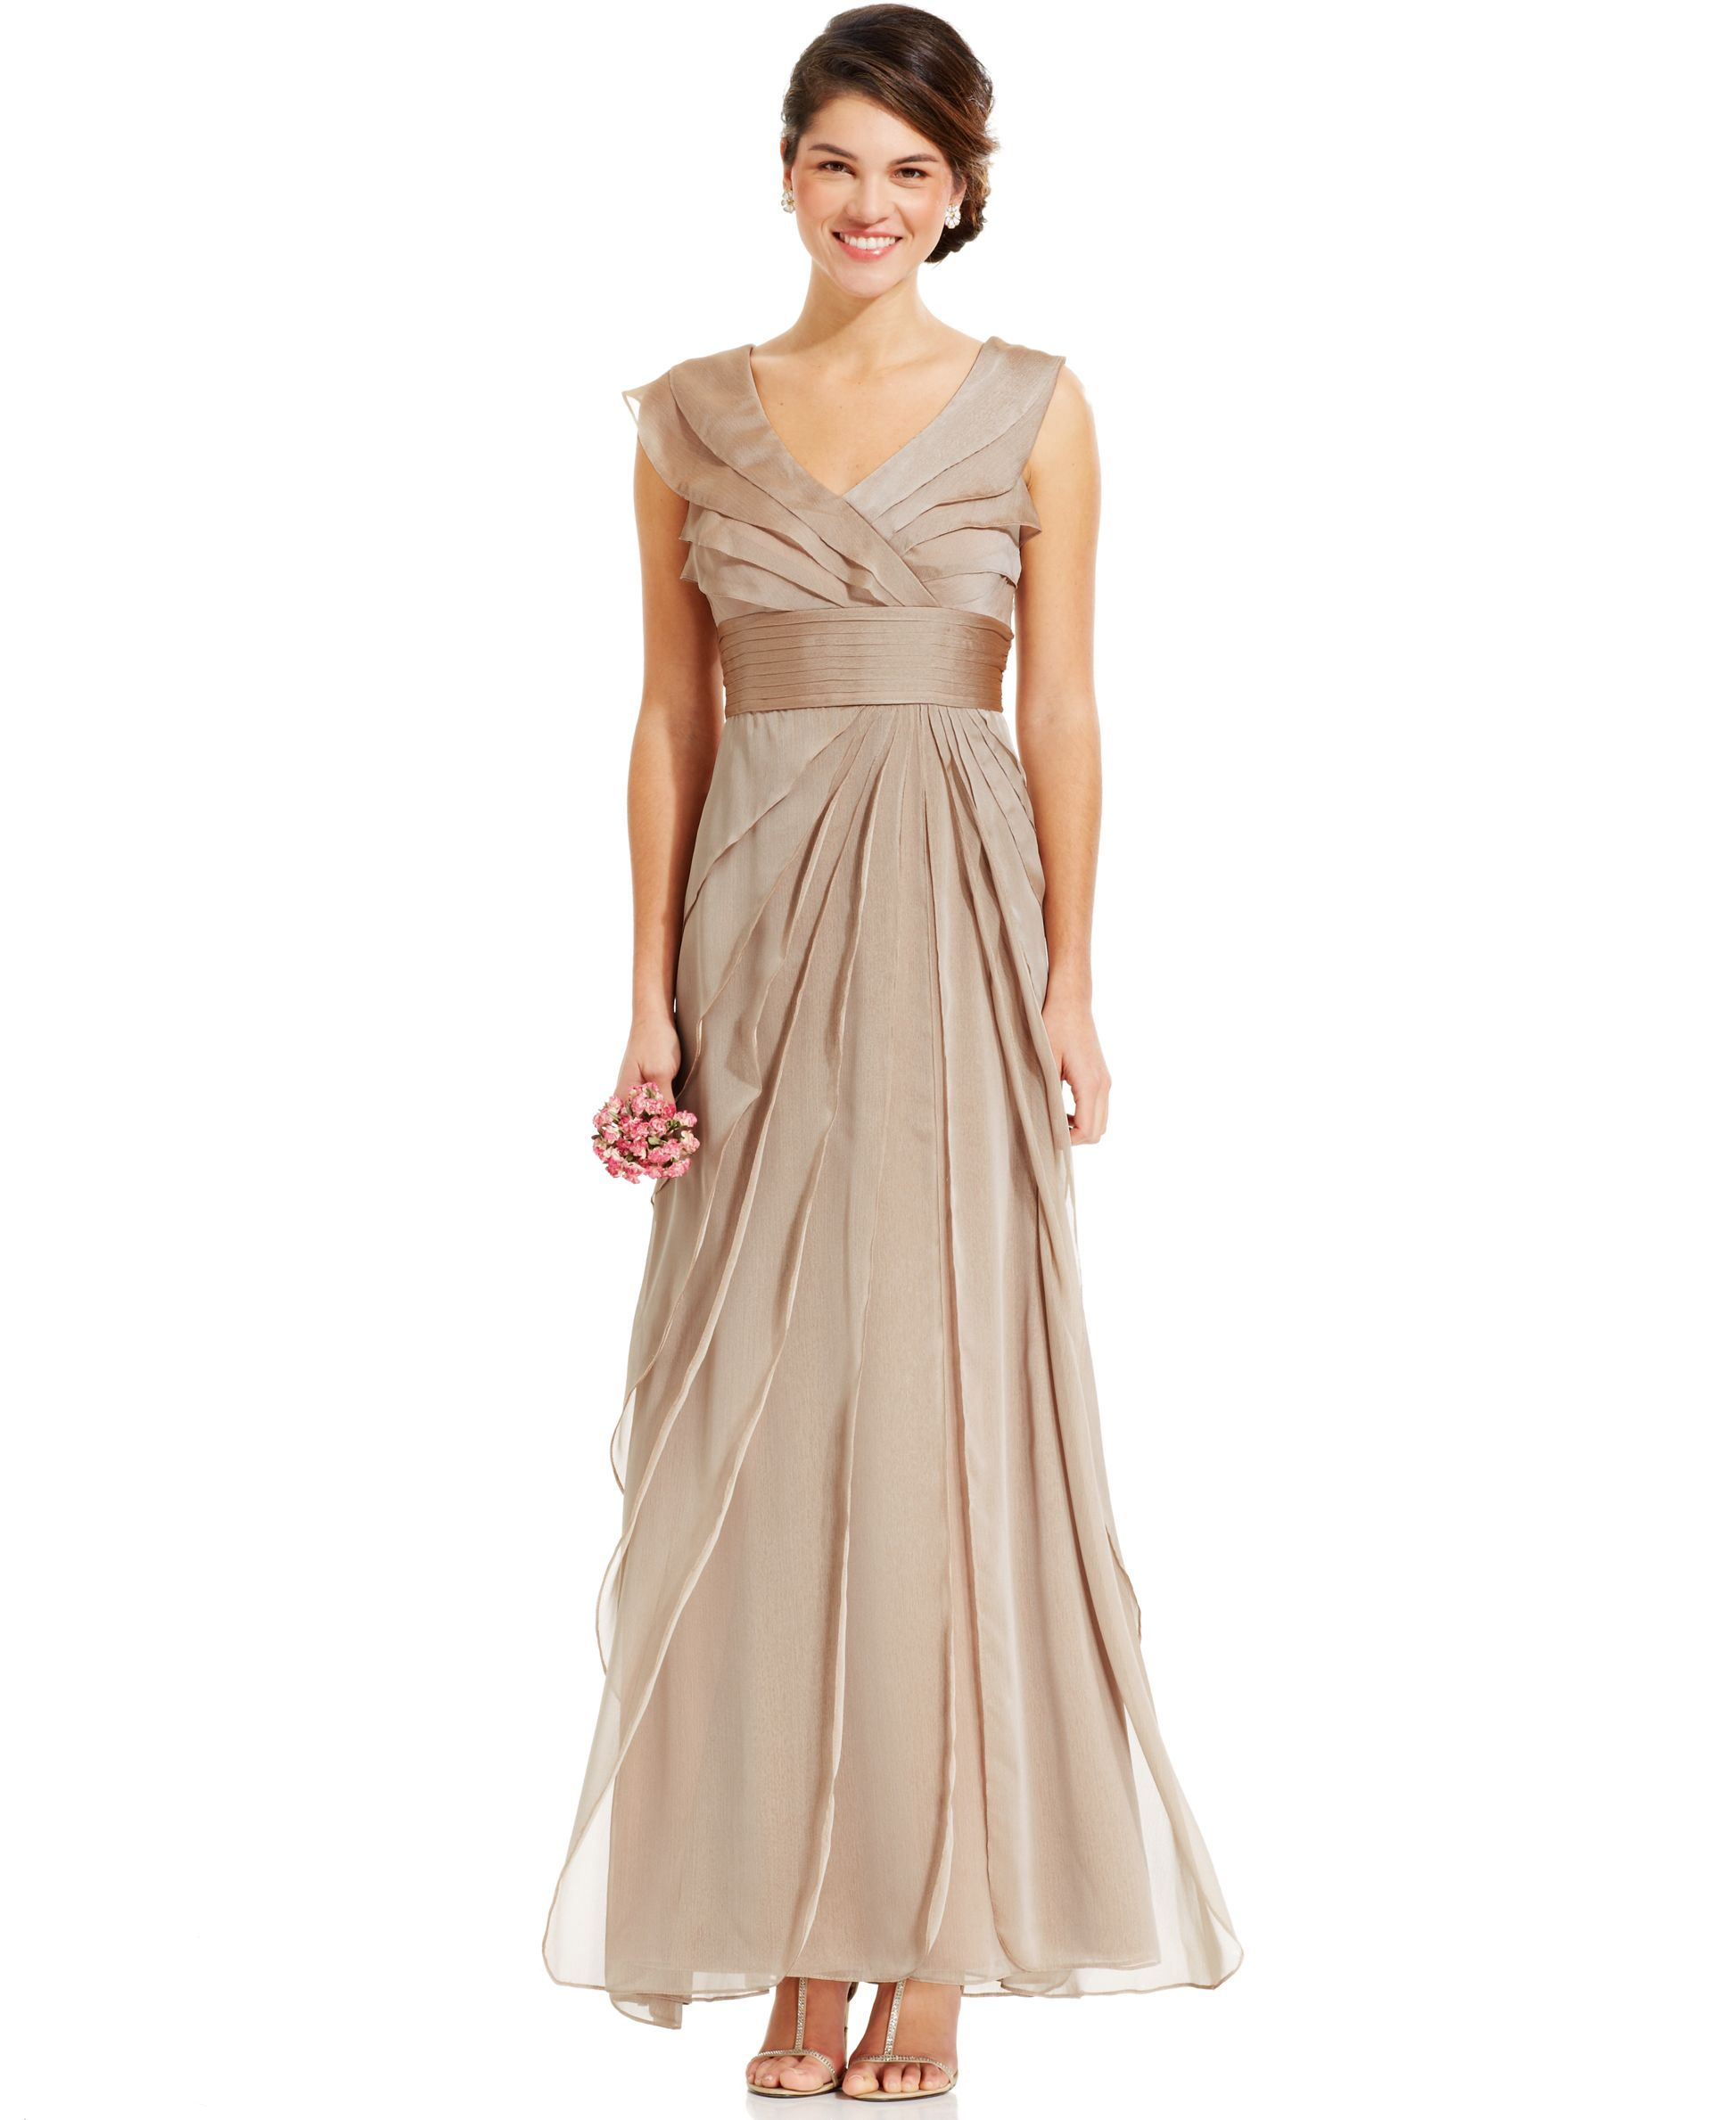 Adrianna Papell Tiered Evening Dress | Products | Pinterest ...